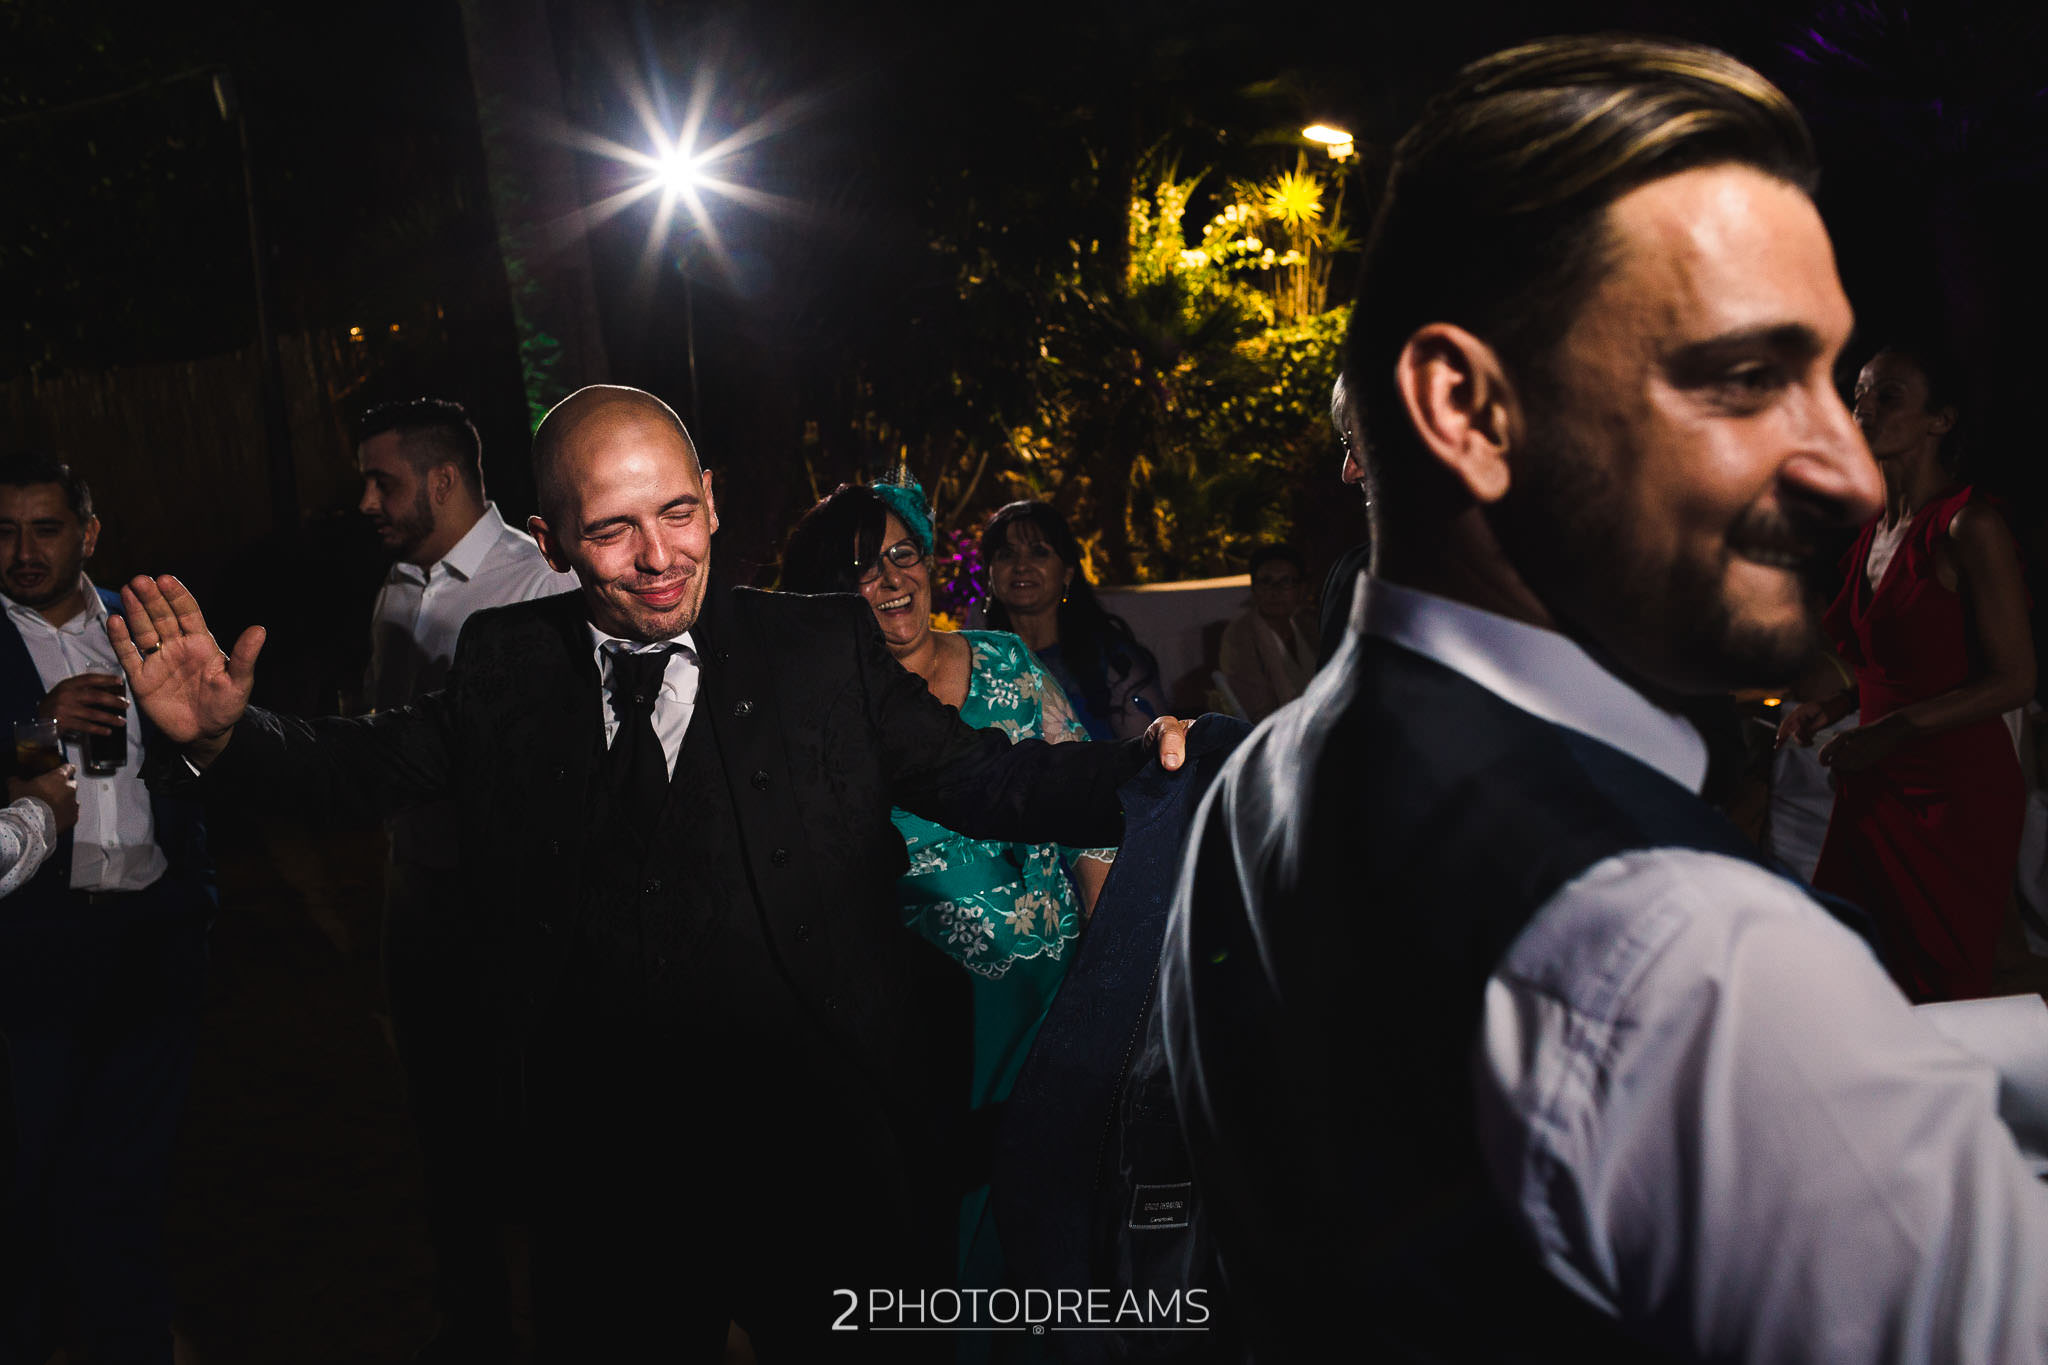 Wedding photographer Waterton Park Hotel